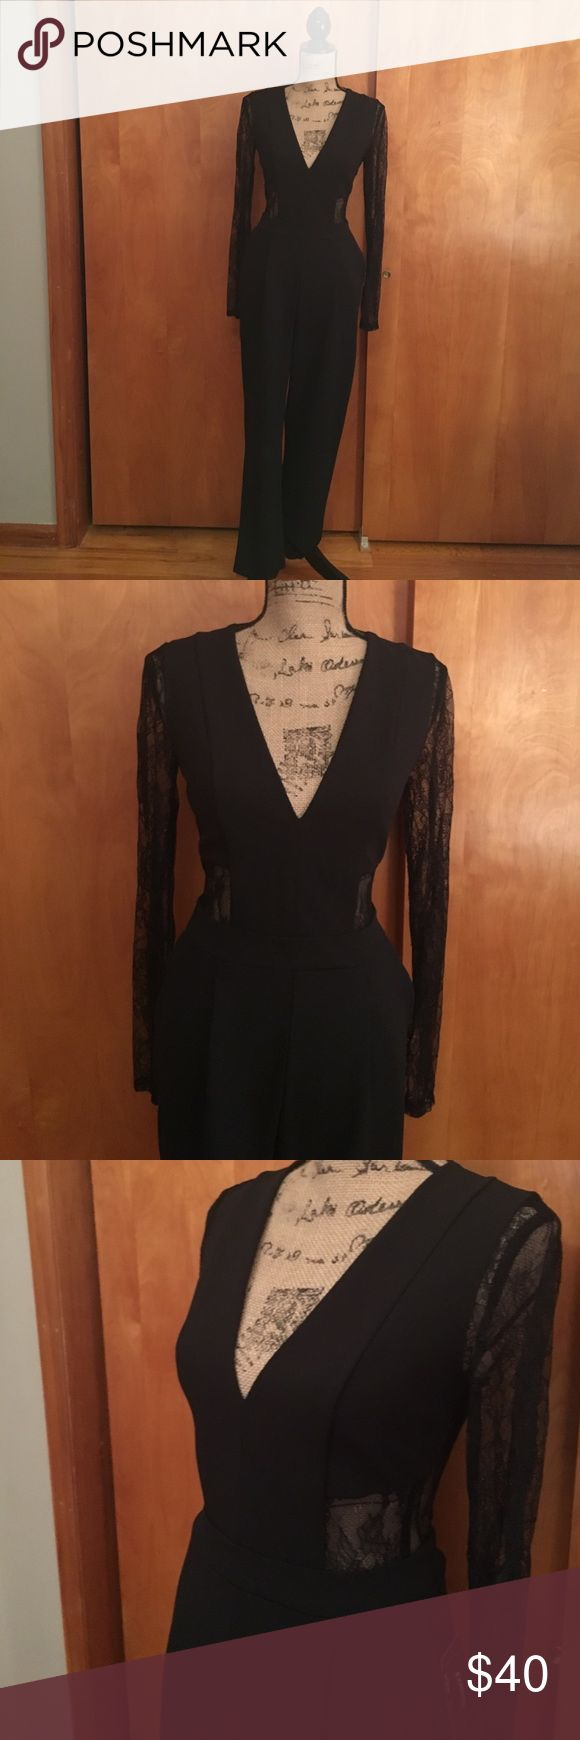 Long sleeve black jumpsuit from Express Long lace sleeved jumpsuit, deep V in front, open lace detail on back. Zips in the back, has pockets and slight pleat in front. Never worn NWT. Bundle discount buy 2 items or more get 30% off! Express Pants Jumpsuits & Rompers